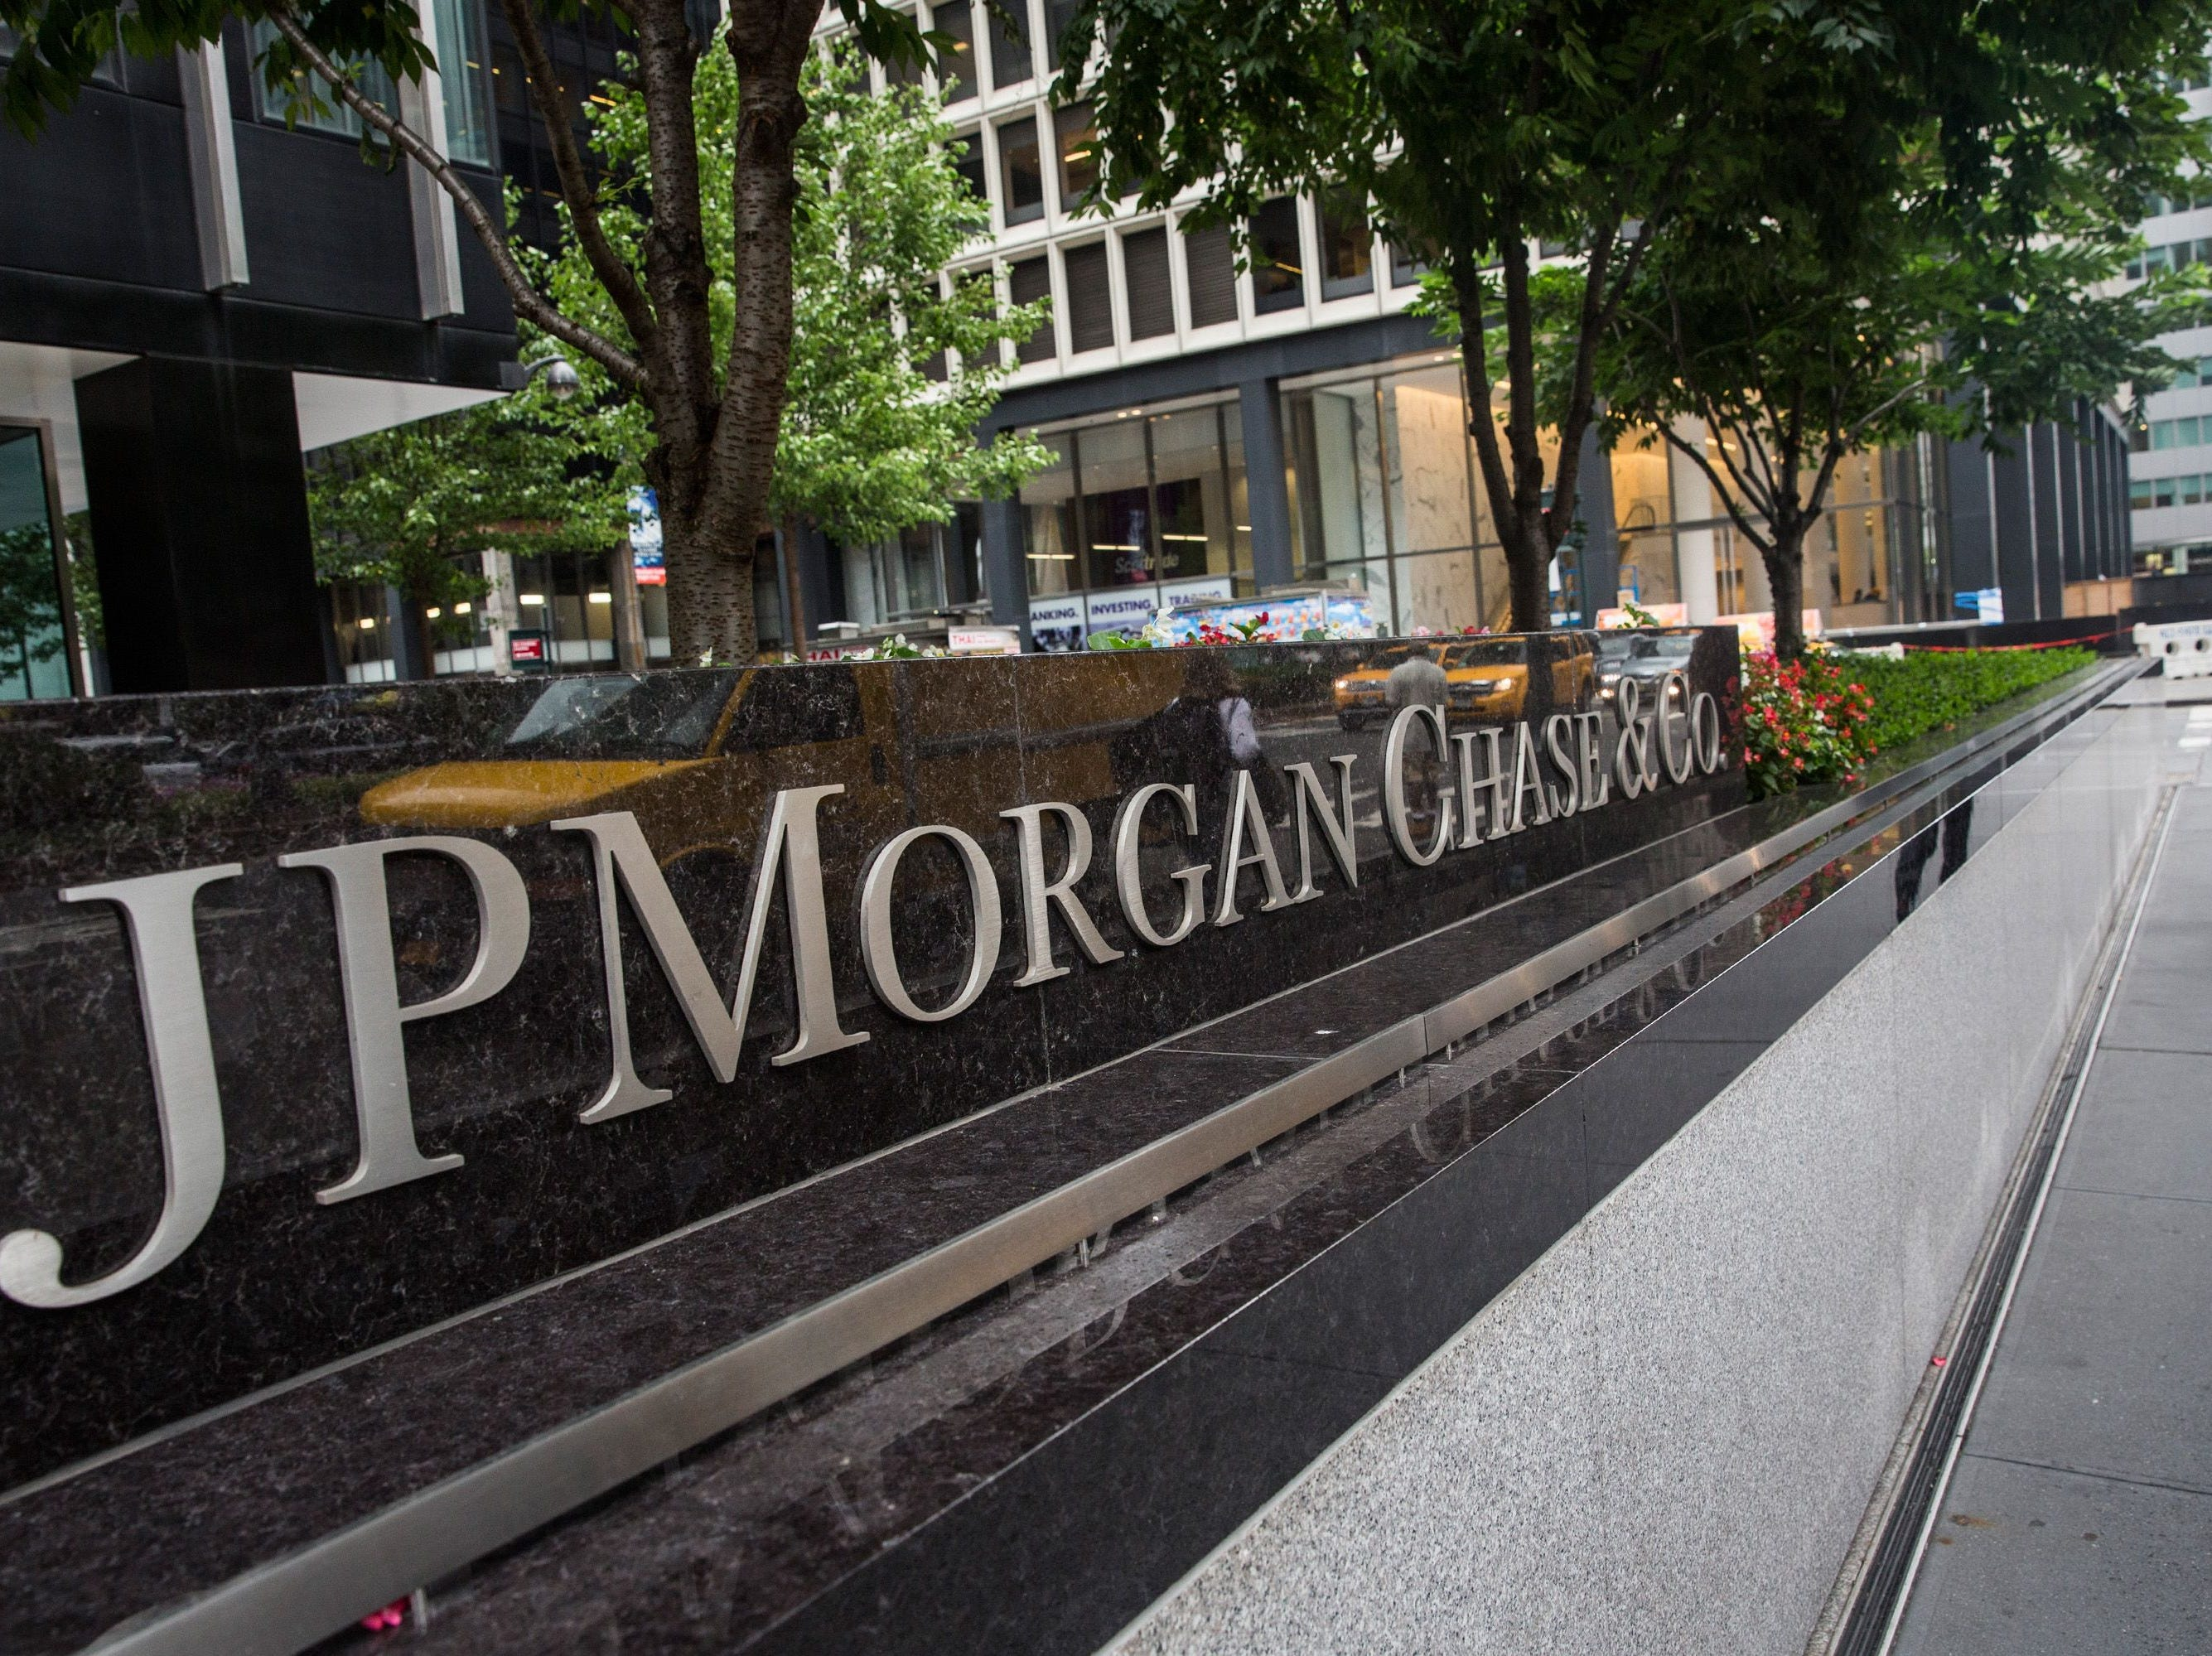 JP Morgan Chase & Co.  Banking, financial services   2019 employees: 10,000   2018 employees: 10,400   Ownership: Public   Headquarters: New York   www.chase.com